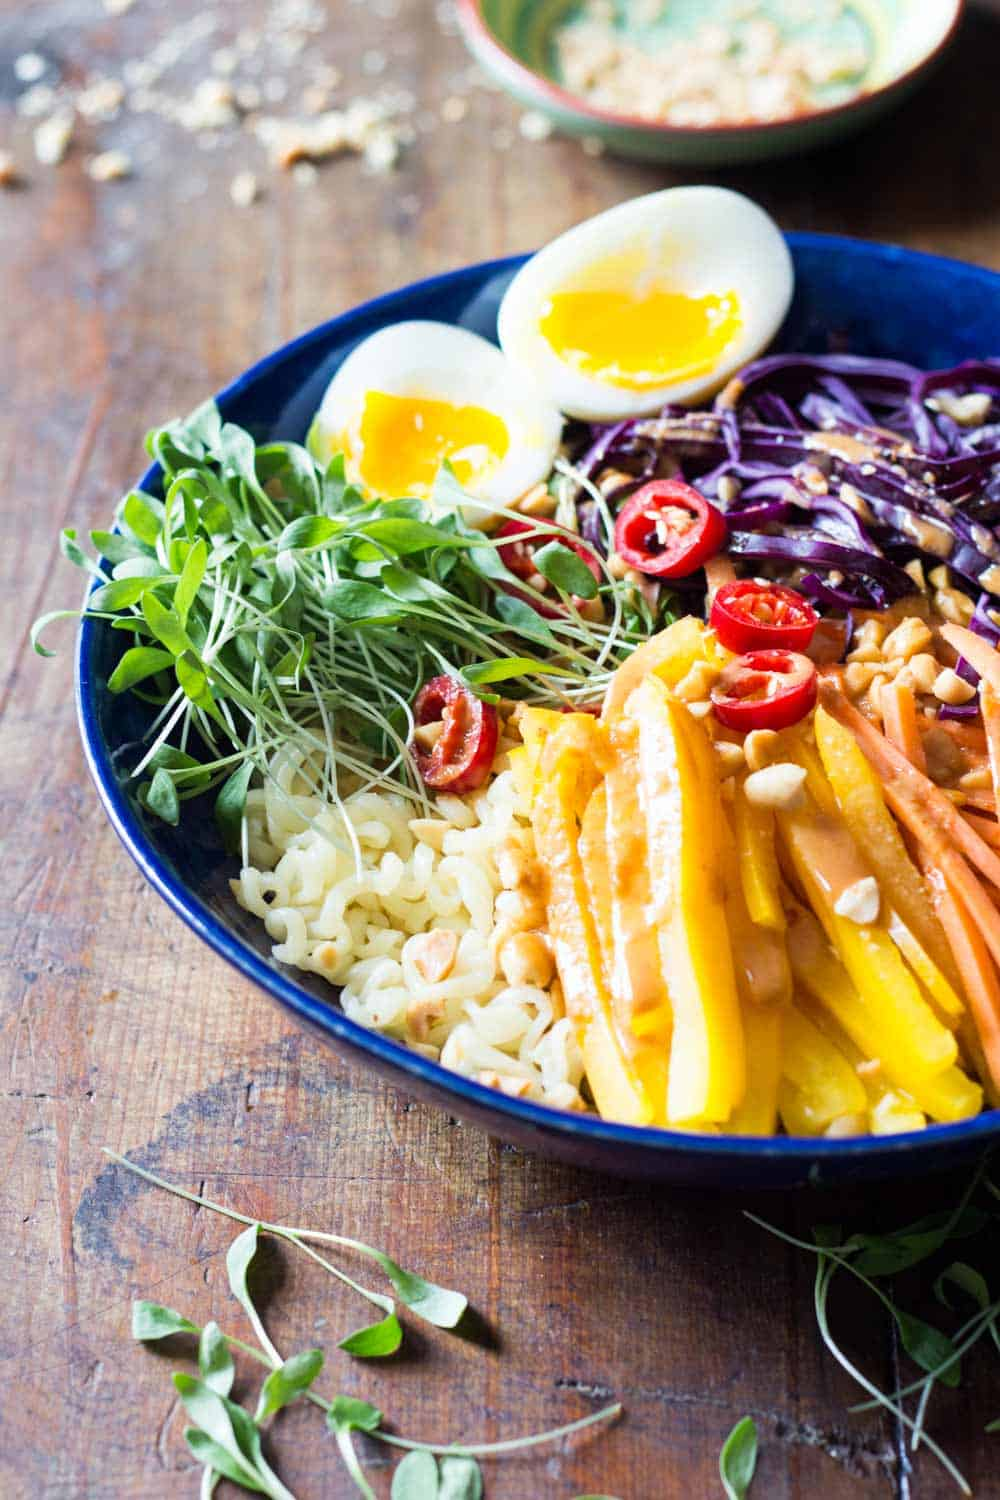 Ramen noodle salad with veggies and soft-boiled egg topped with peanut sauce, presented in a blue plate